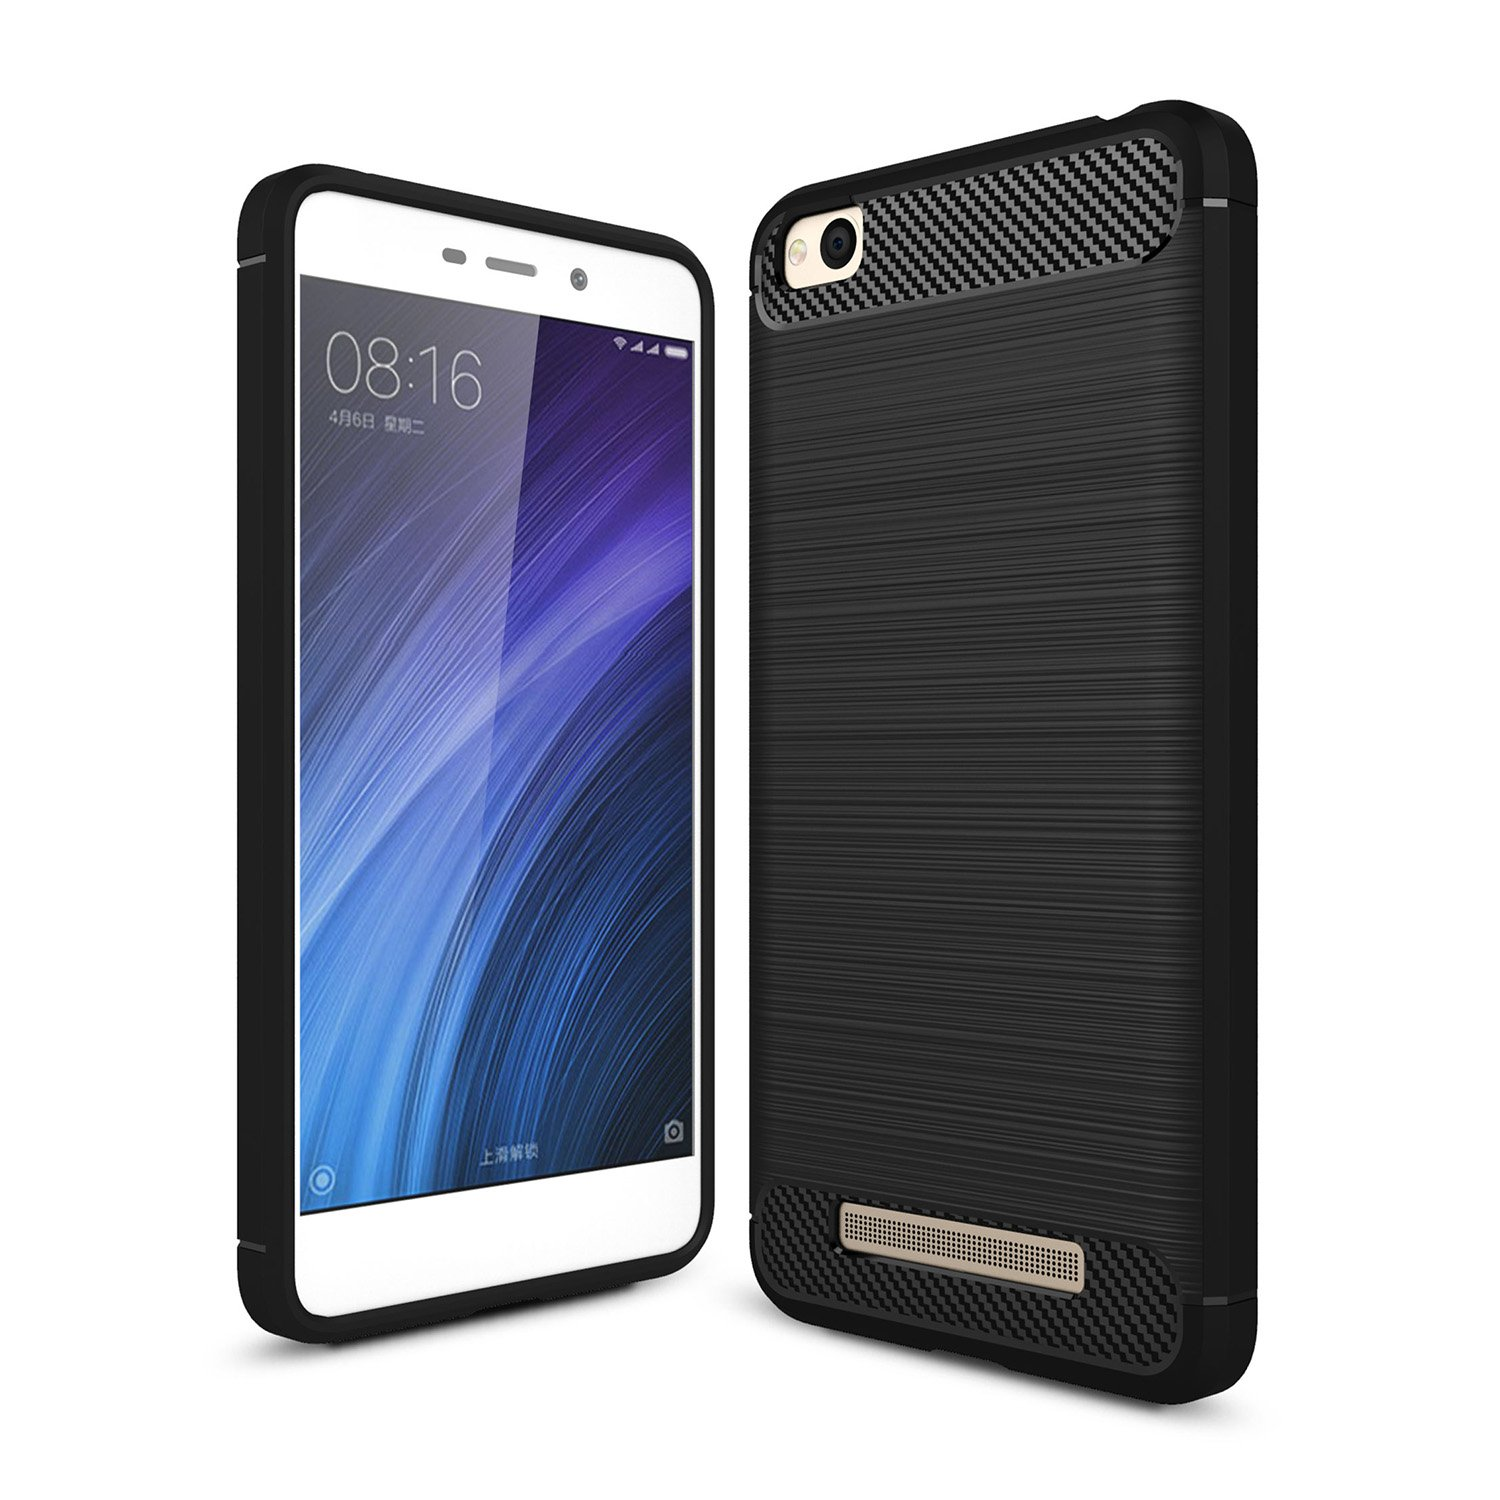 Payxuan Cover (Black)